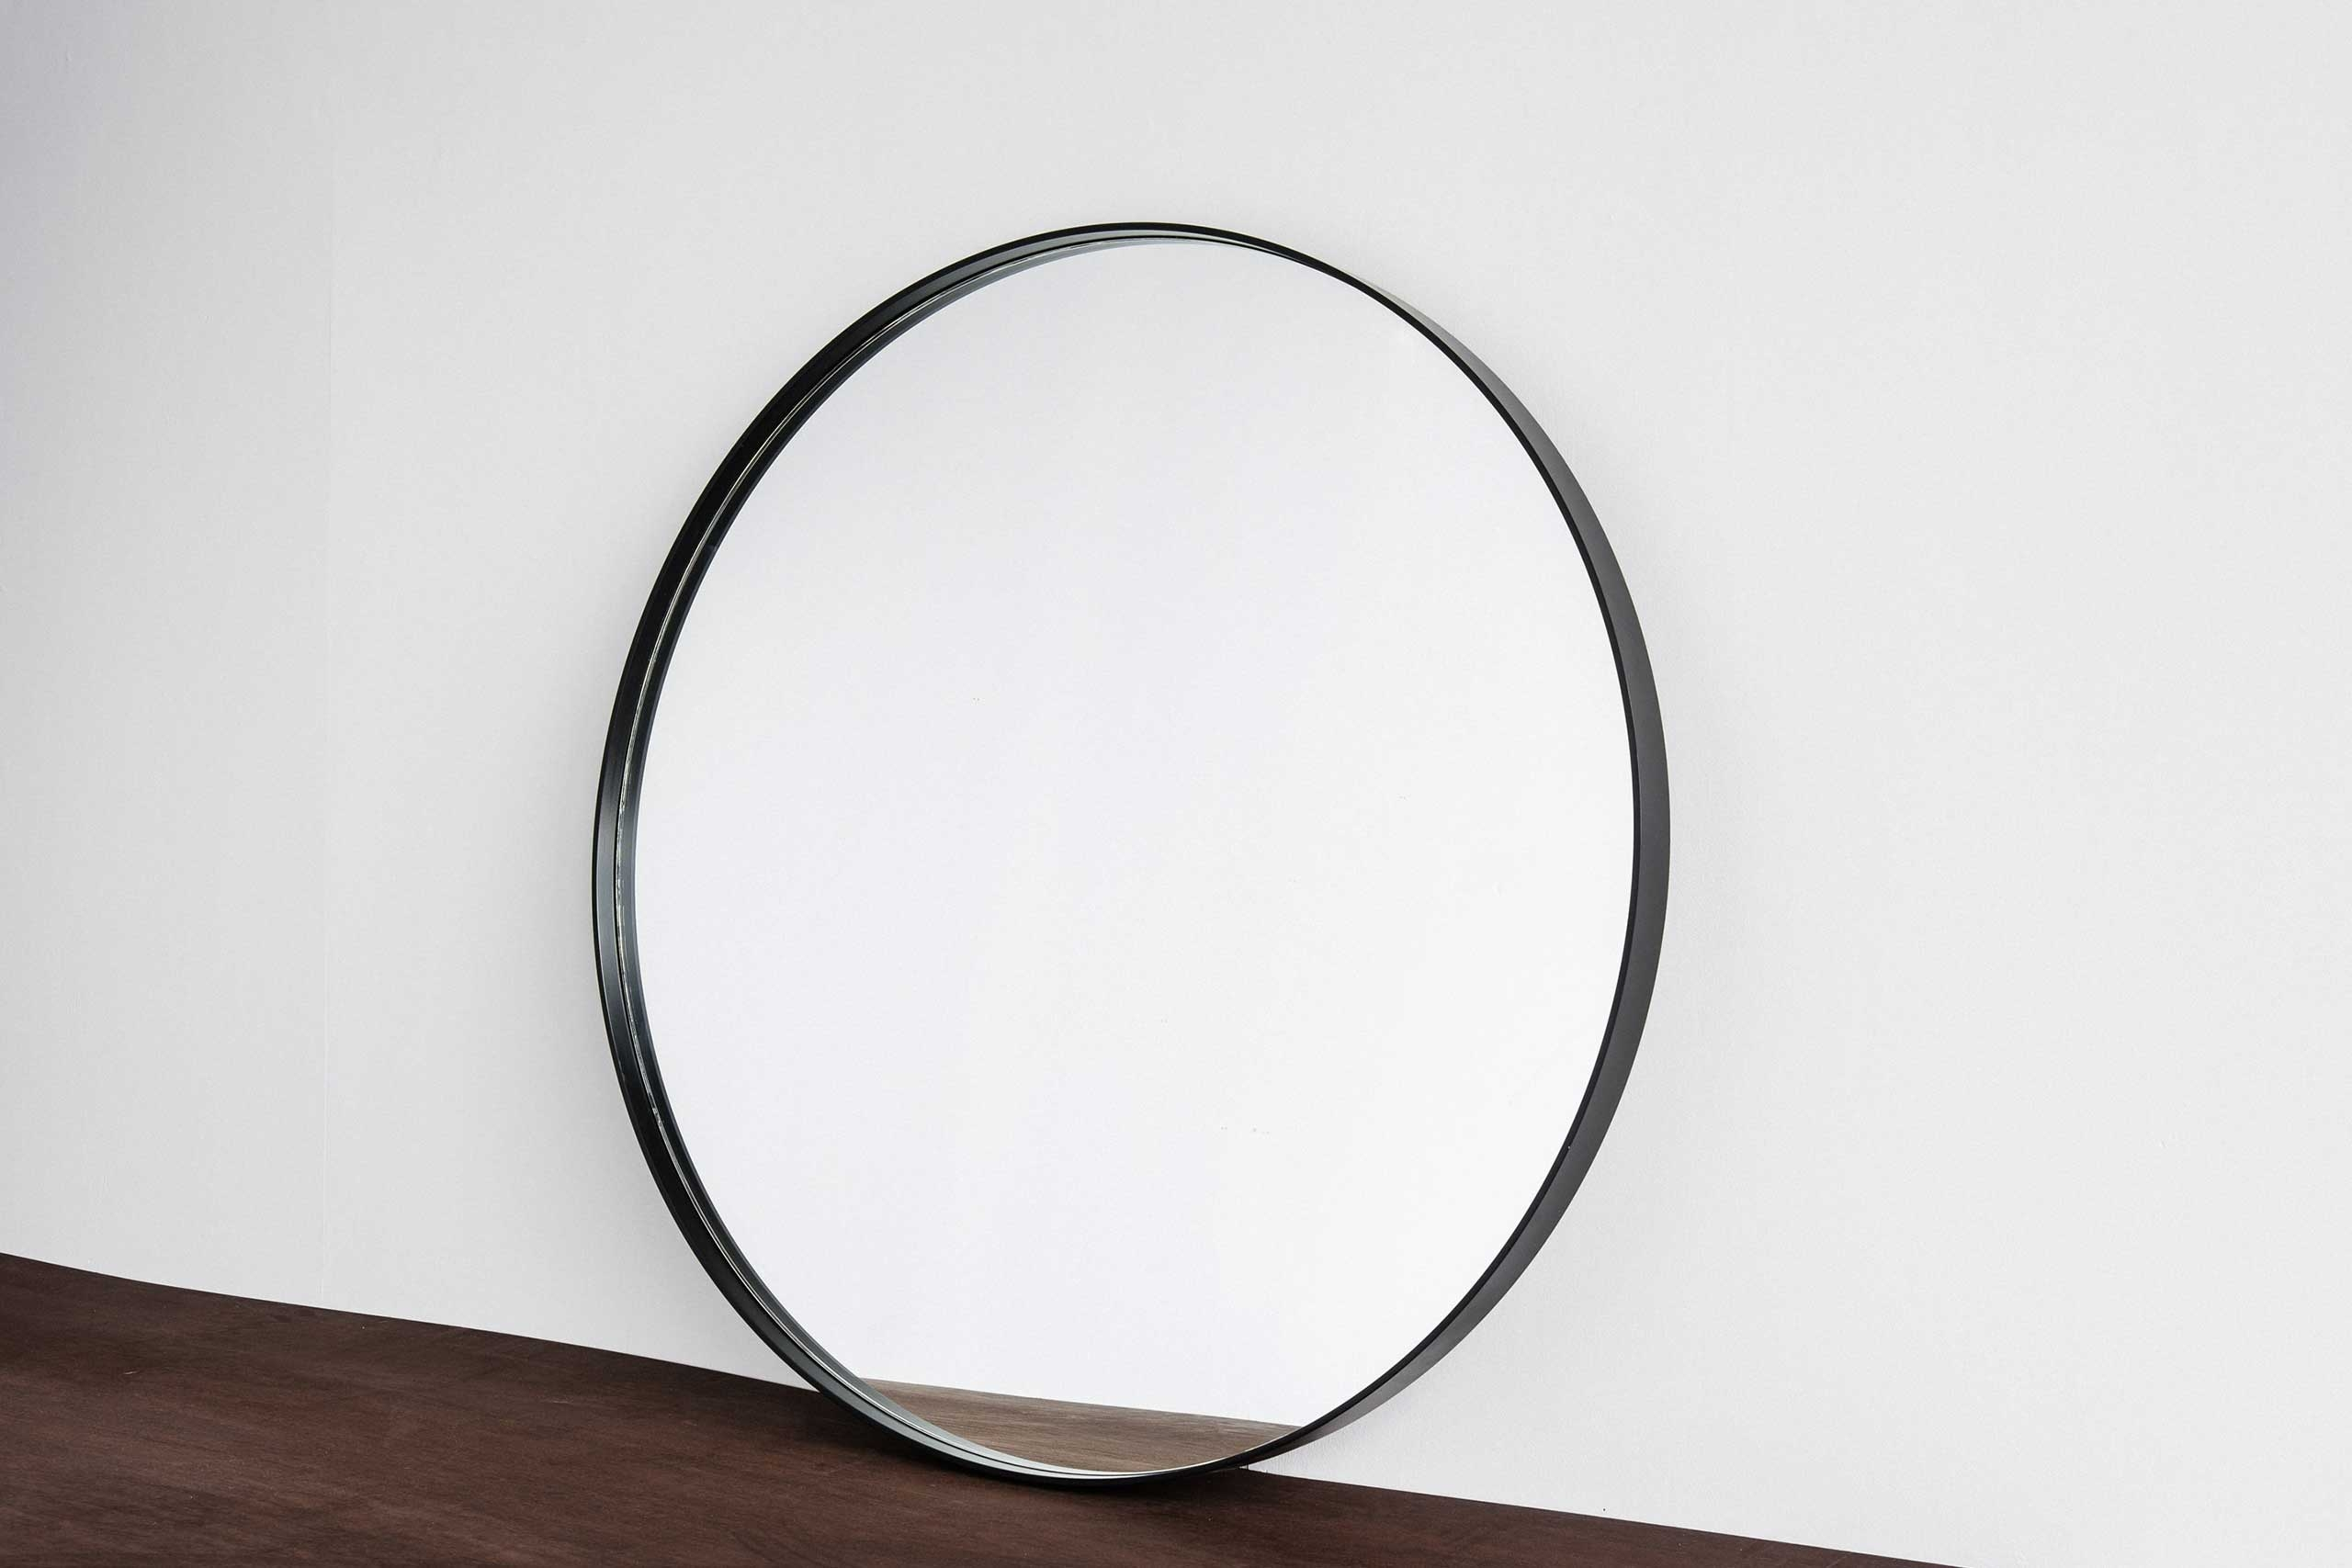 Home Industry Furniture Designed Handcrafted In New Zealand 2016 Throughout Black Circle Mirrors (Image 5 of 15)